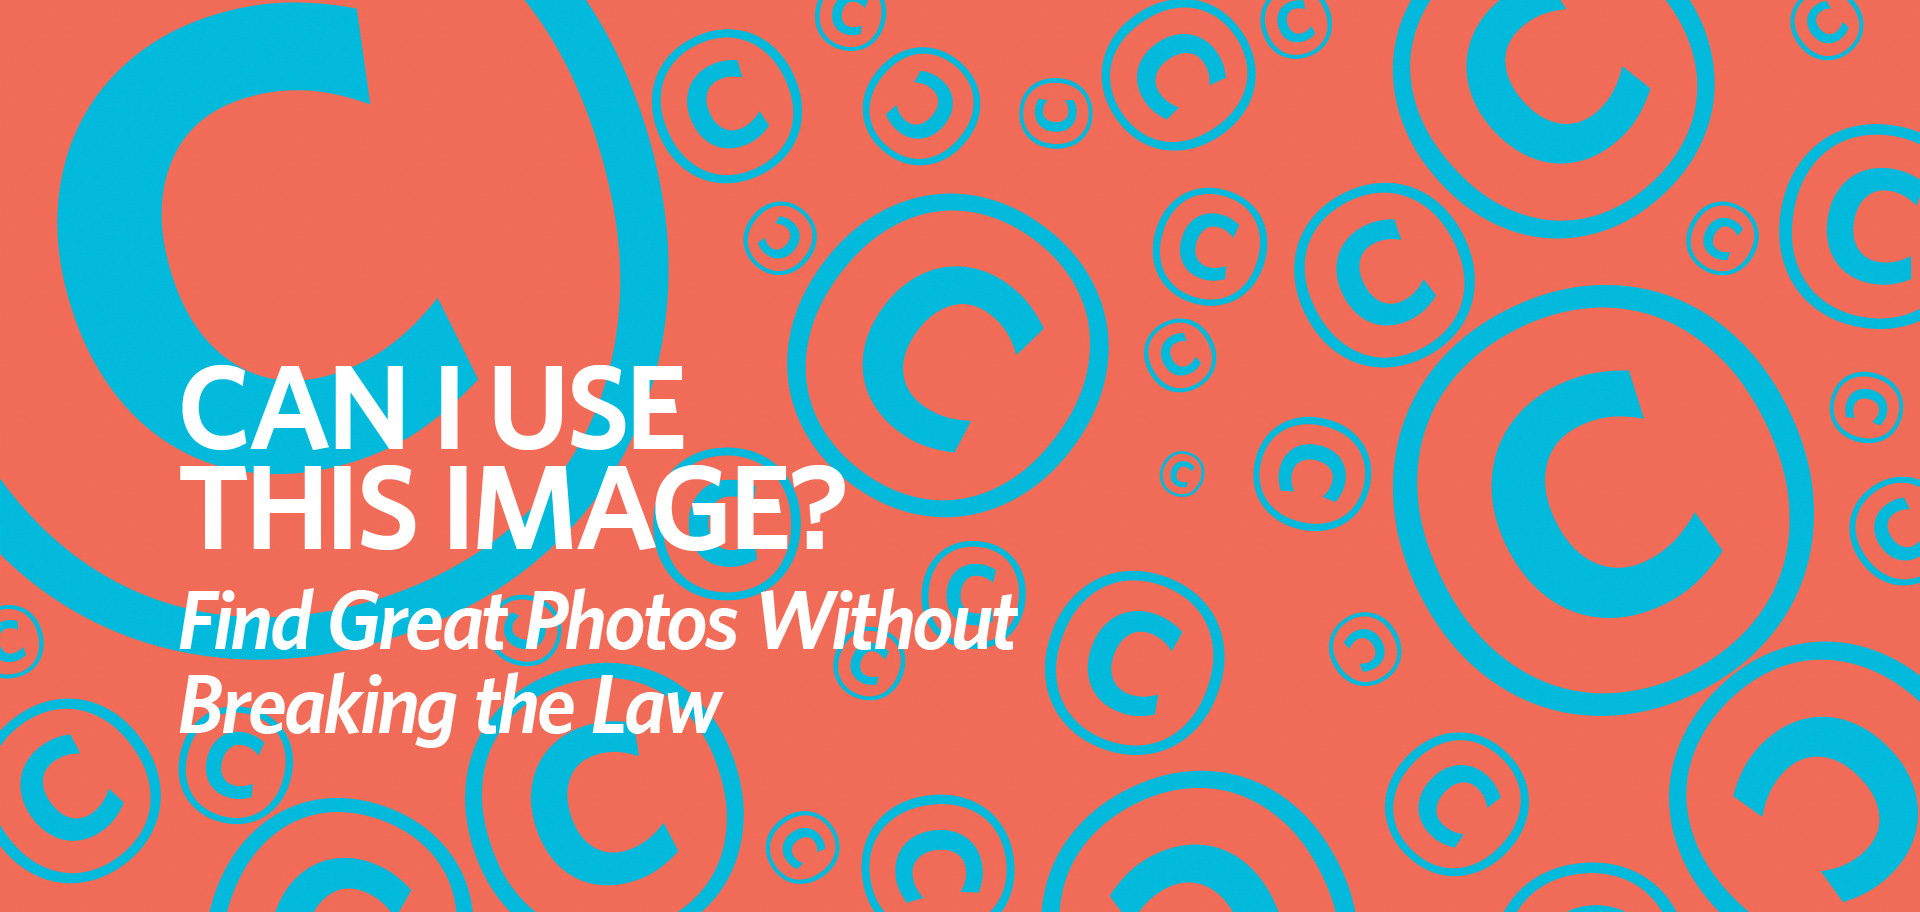 Can I use this image? Find Great Photos Without Breaking the Law by Kettle Fire Creative. Copyright law and photos online, fair use, free stock photos  Can I use this image? Find Great Photos Without Breaking the Law photo use fi